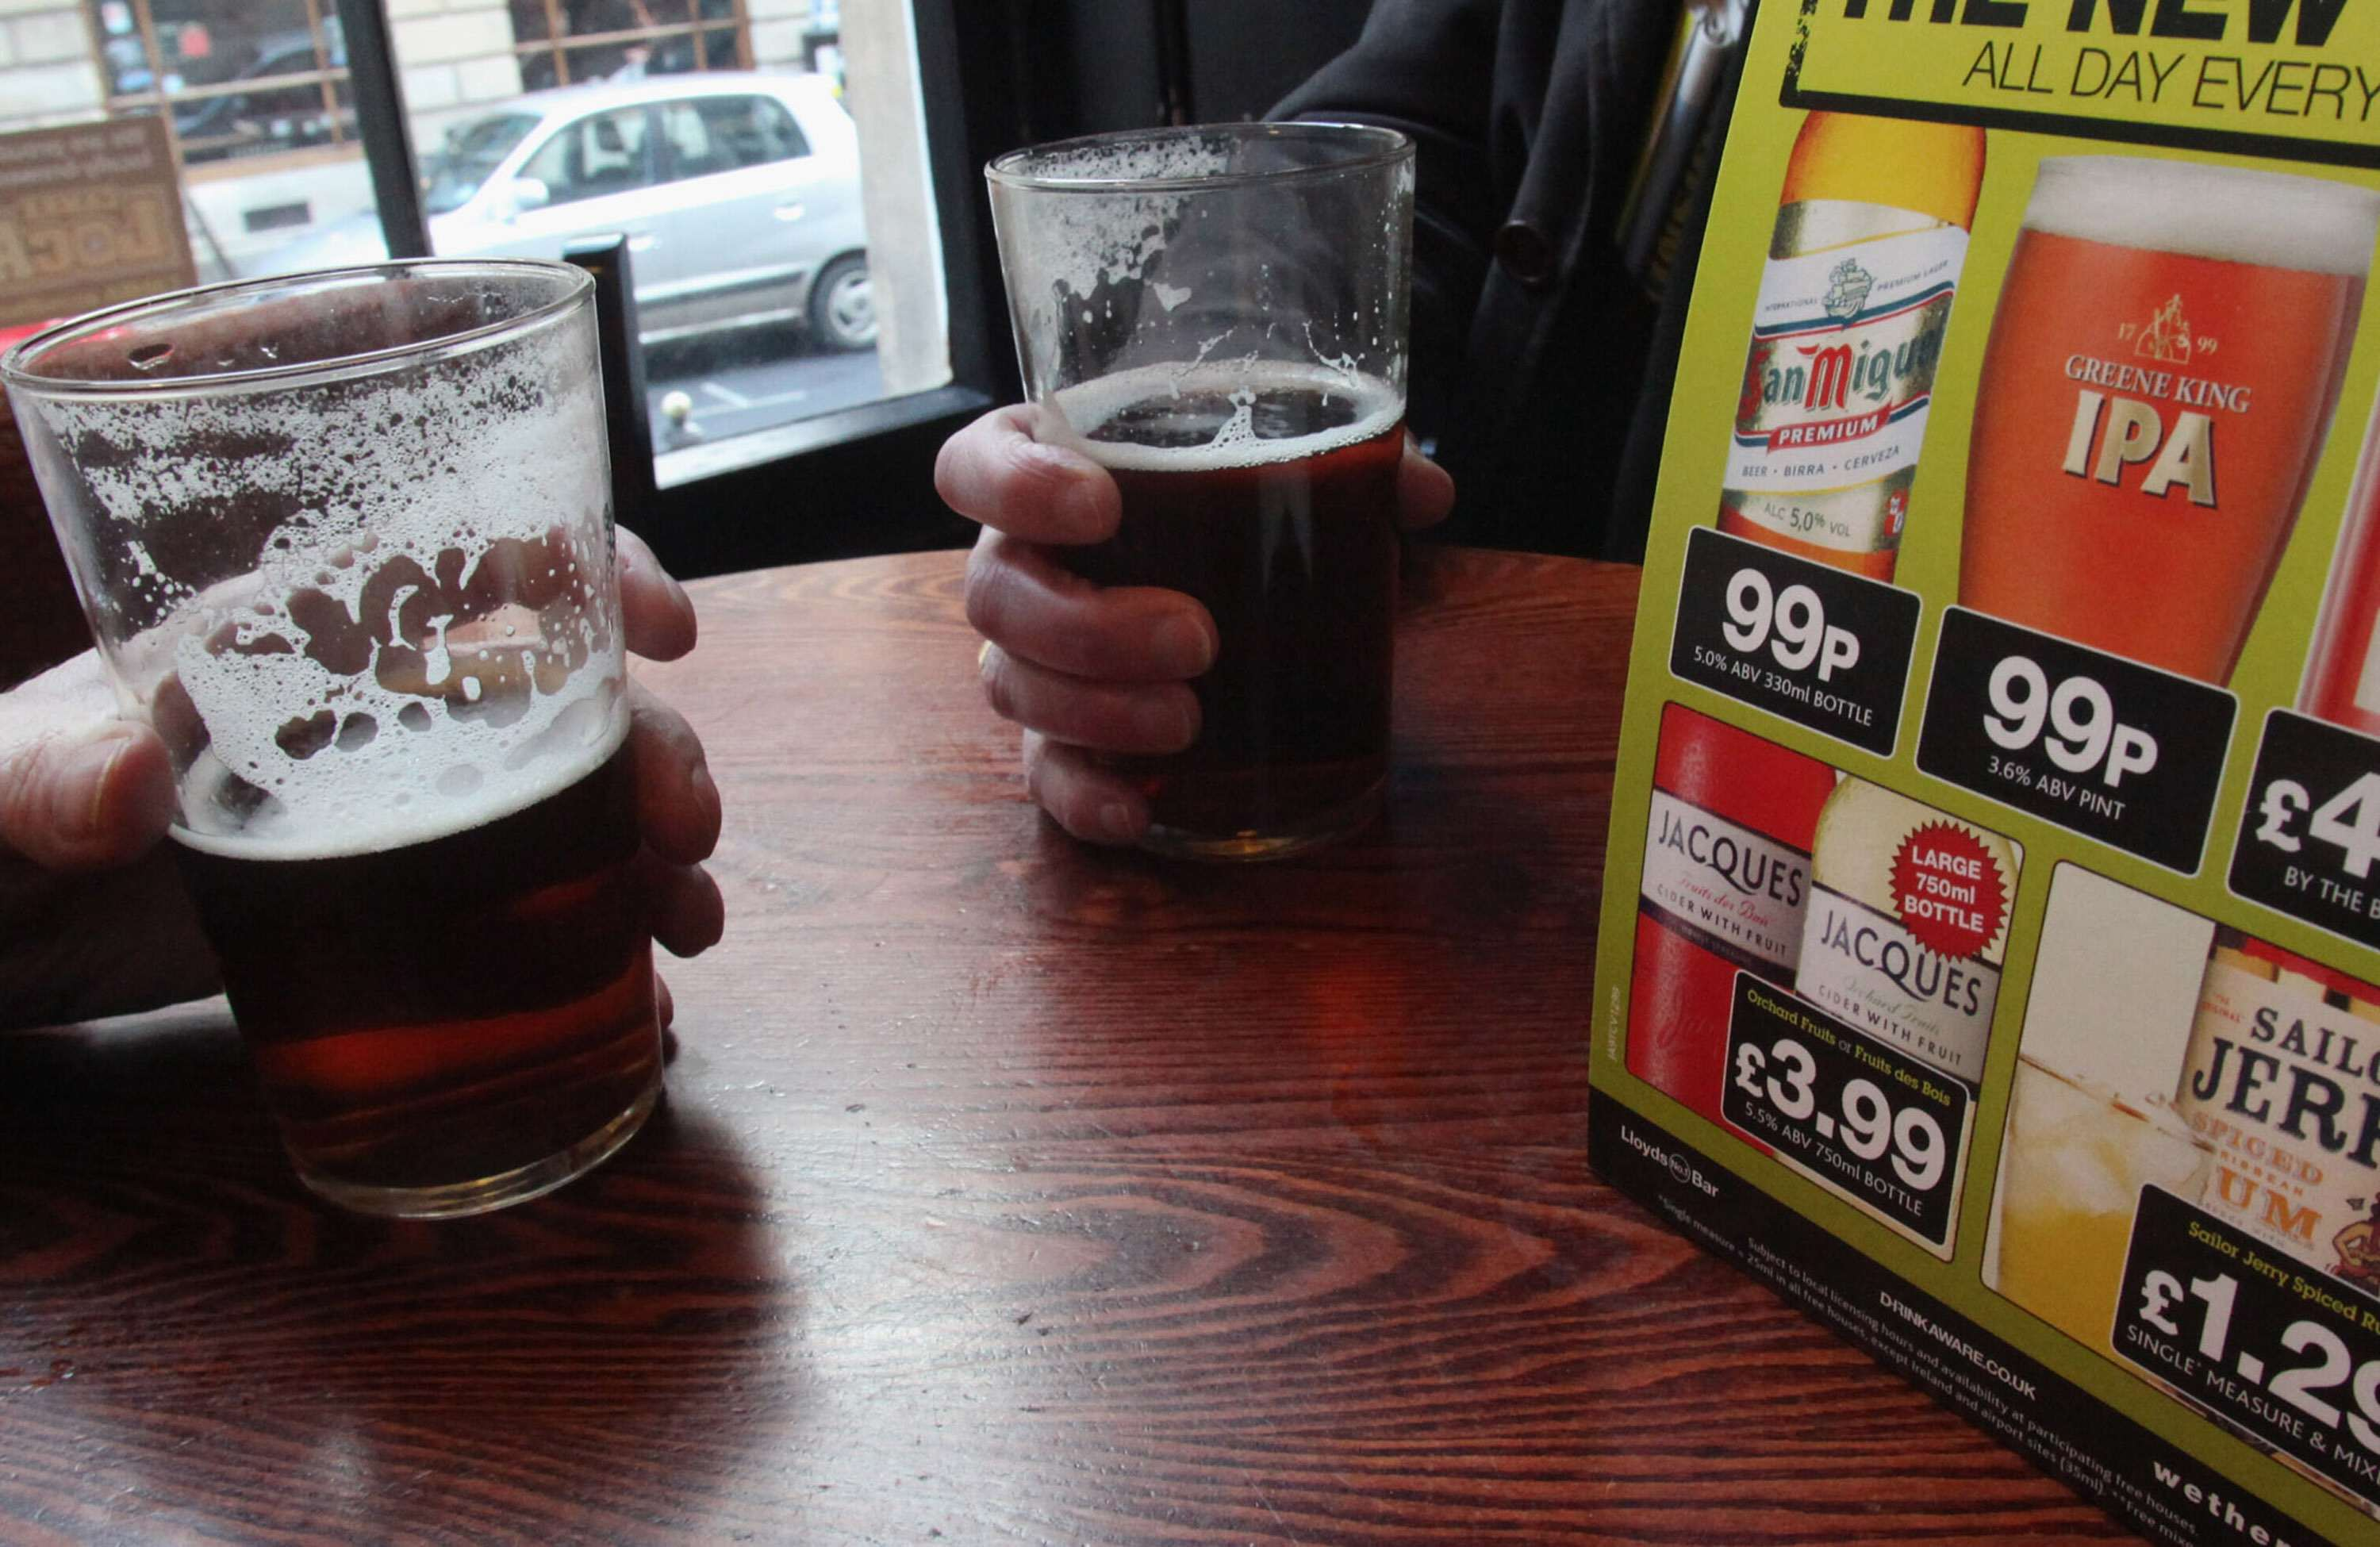 Pub Chain Lowers Price Of Beer To 99p A Pint